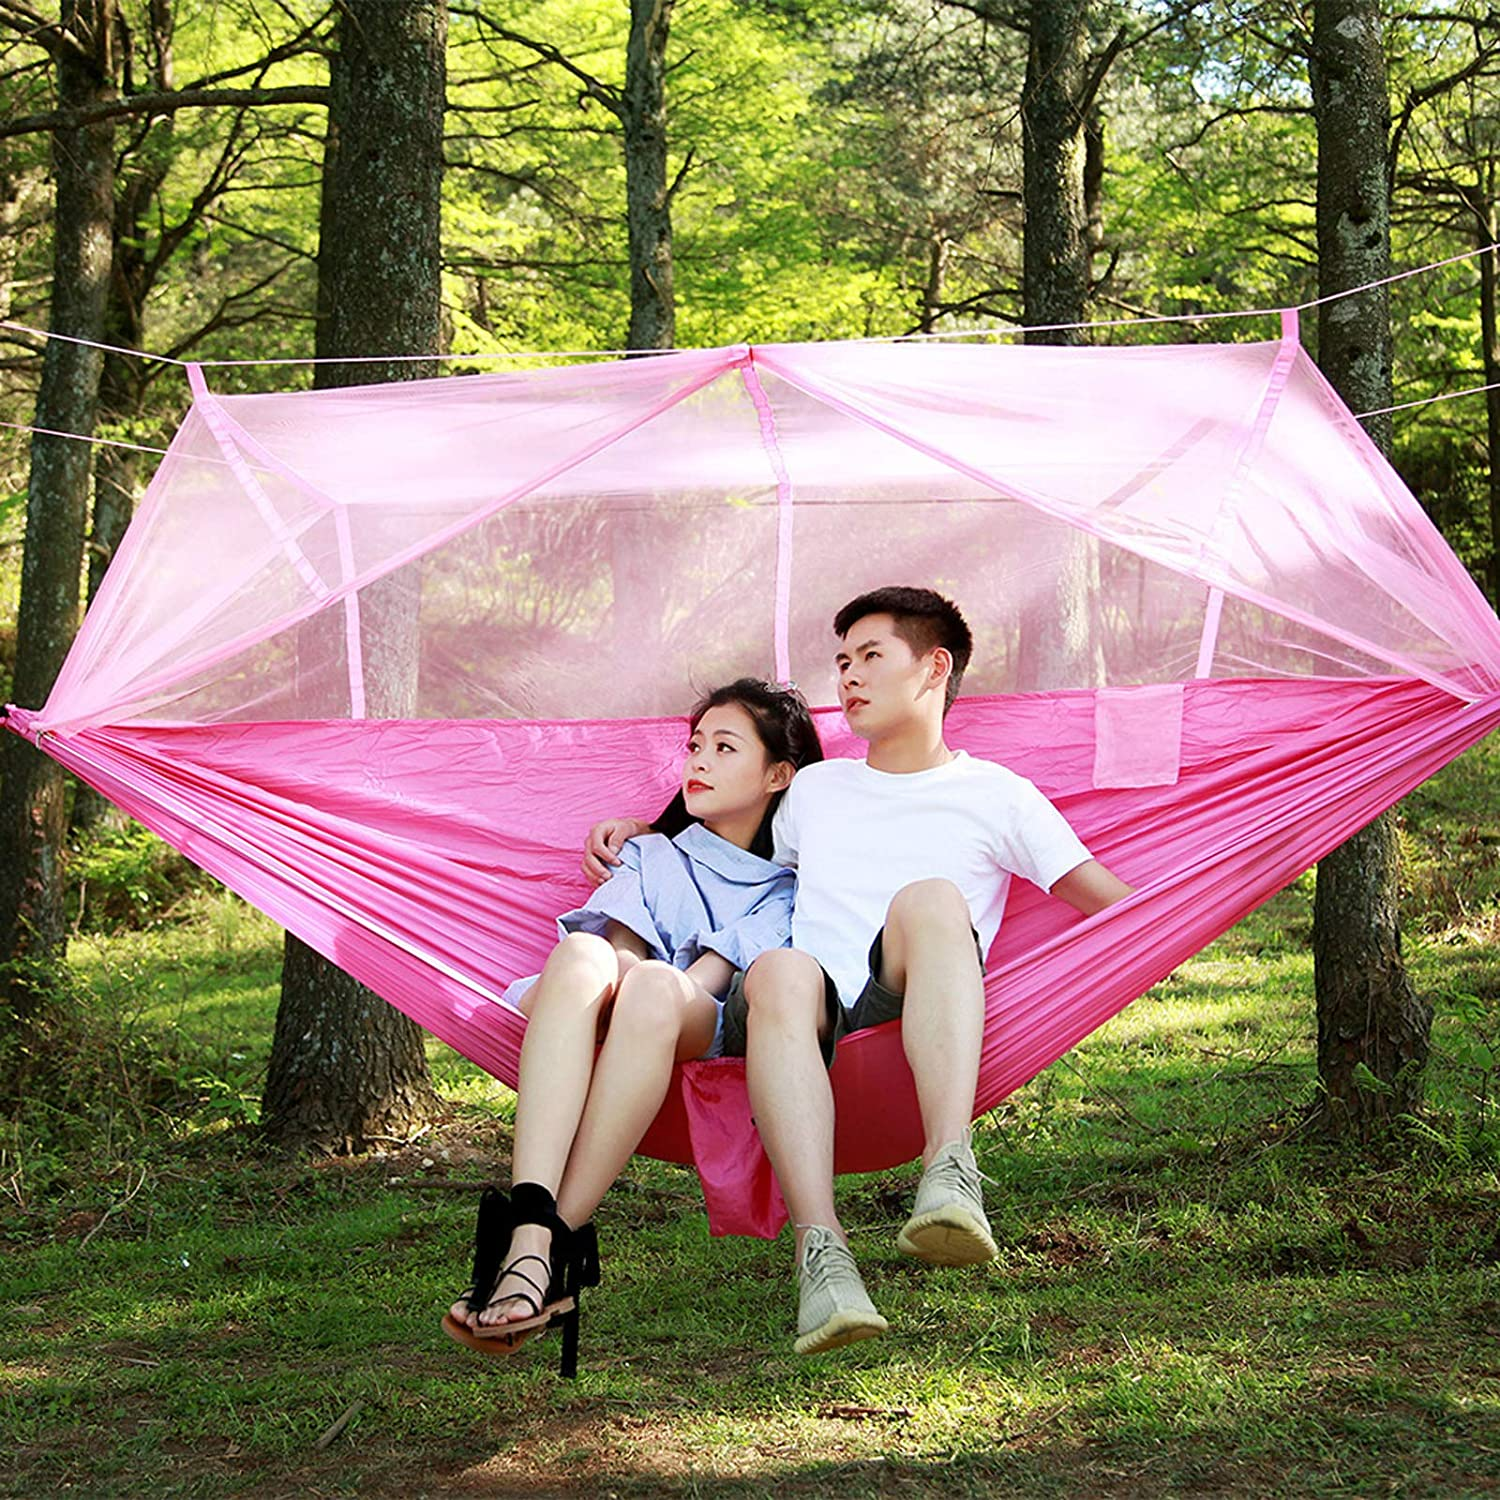 DYHG Camping Hammock with Memphis Mall Mosquito Free shipping on posting reviews Portab Net -Lightweight Nylon